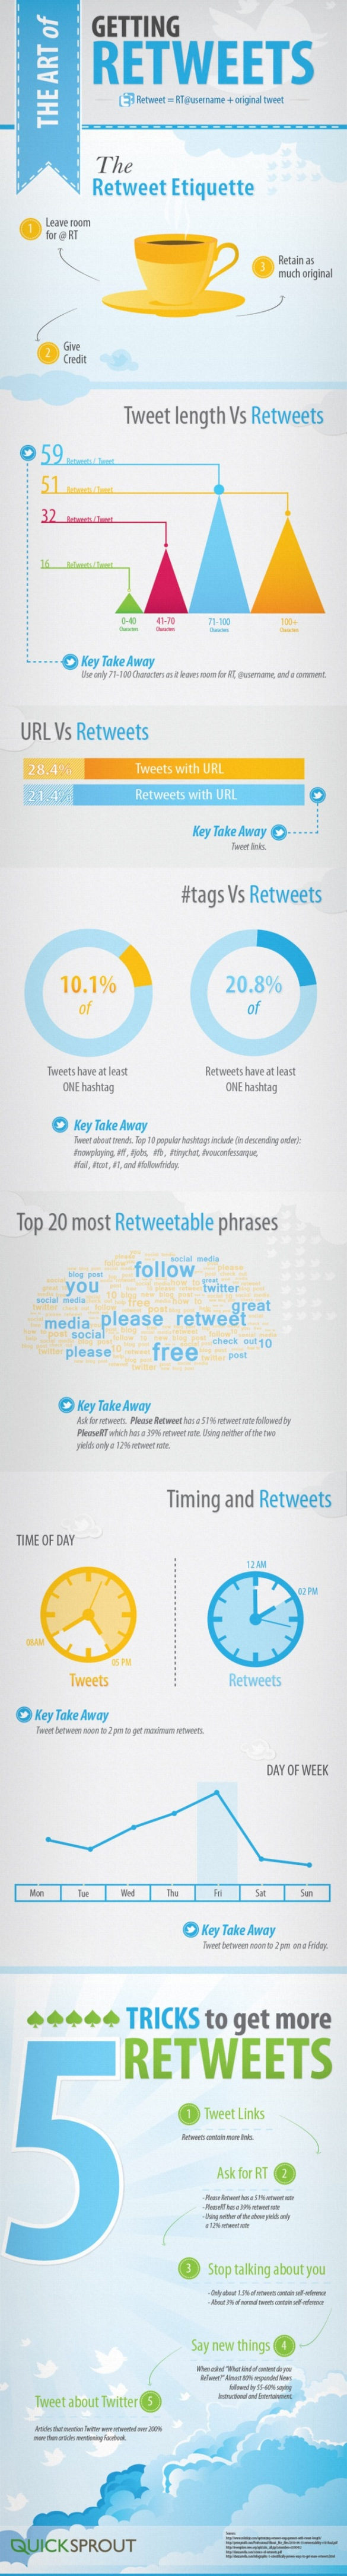 the-art-of-getting-retweets_51c0ee6acd241